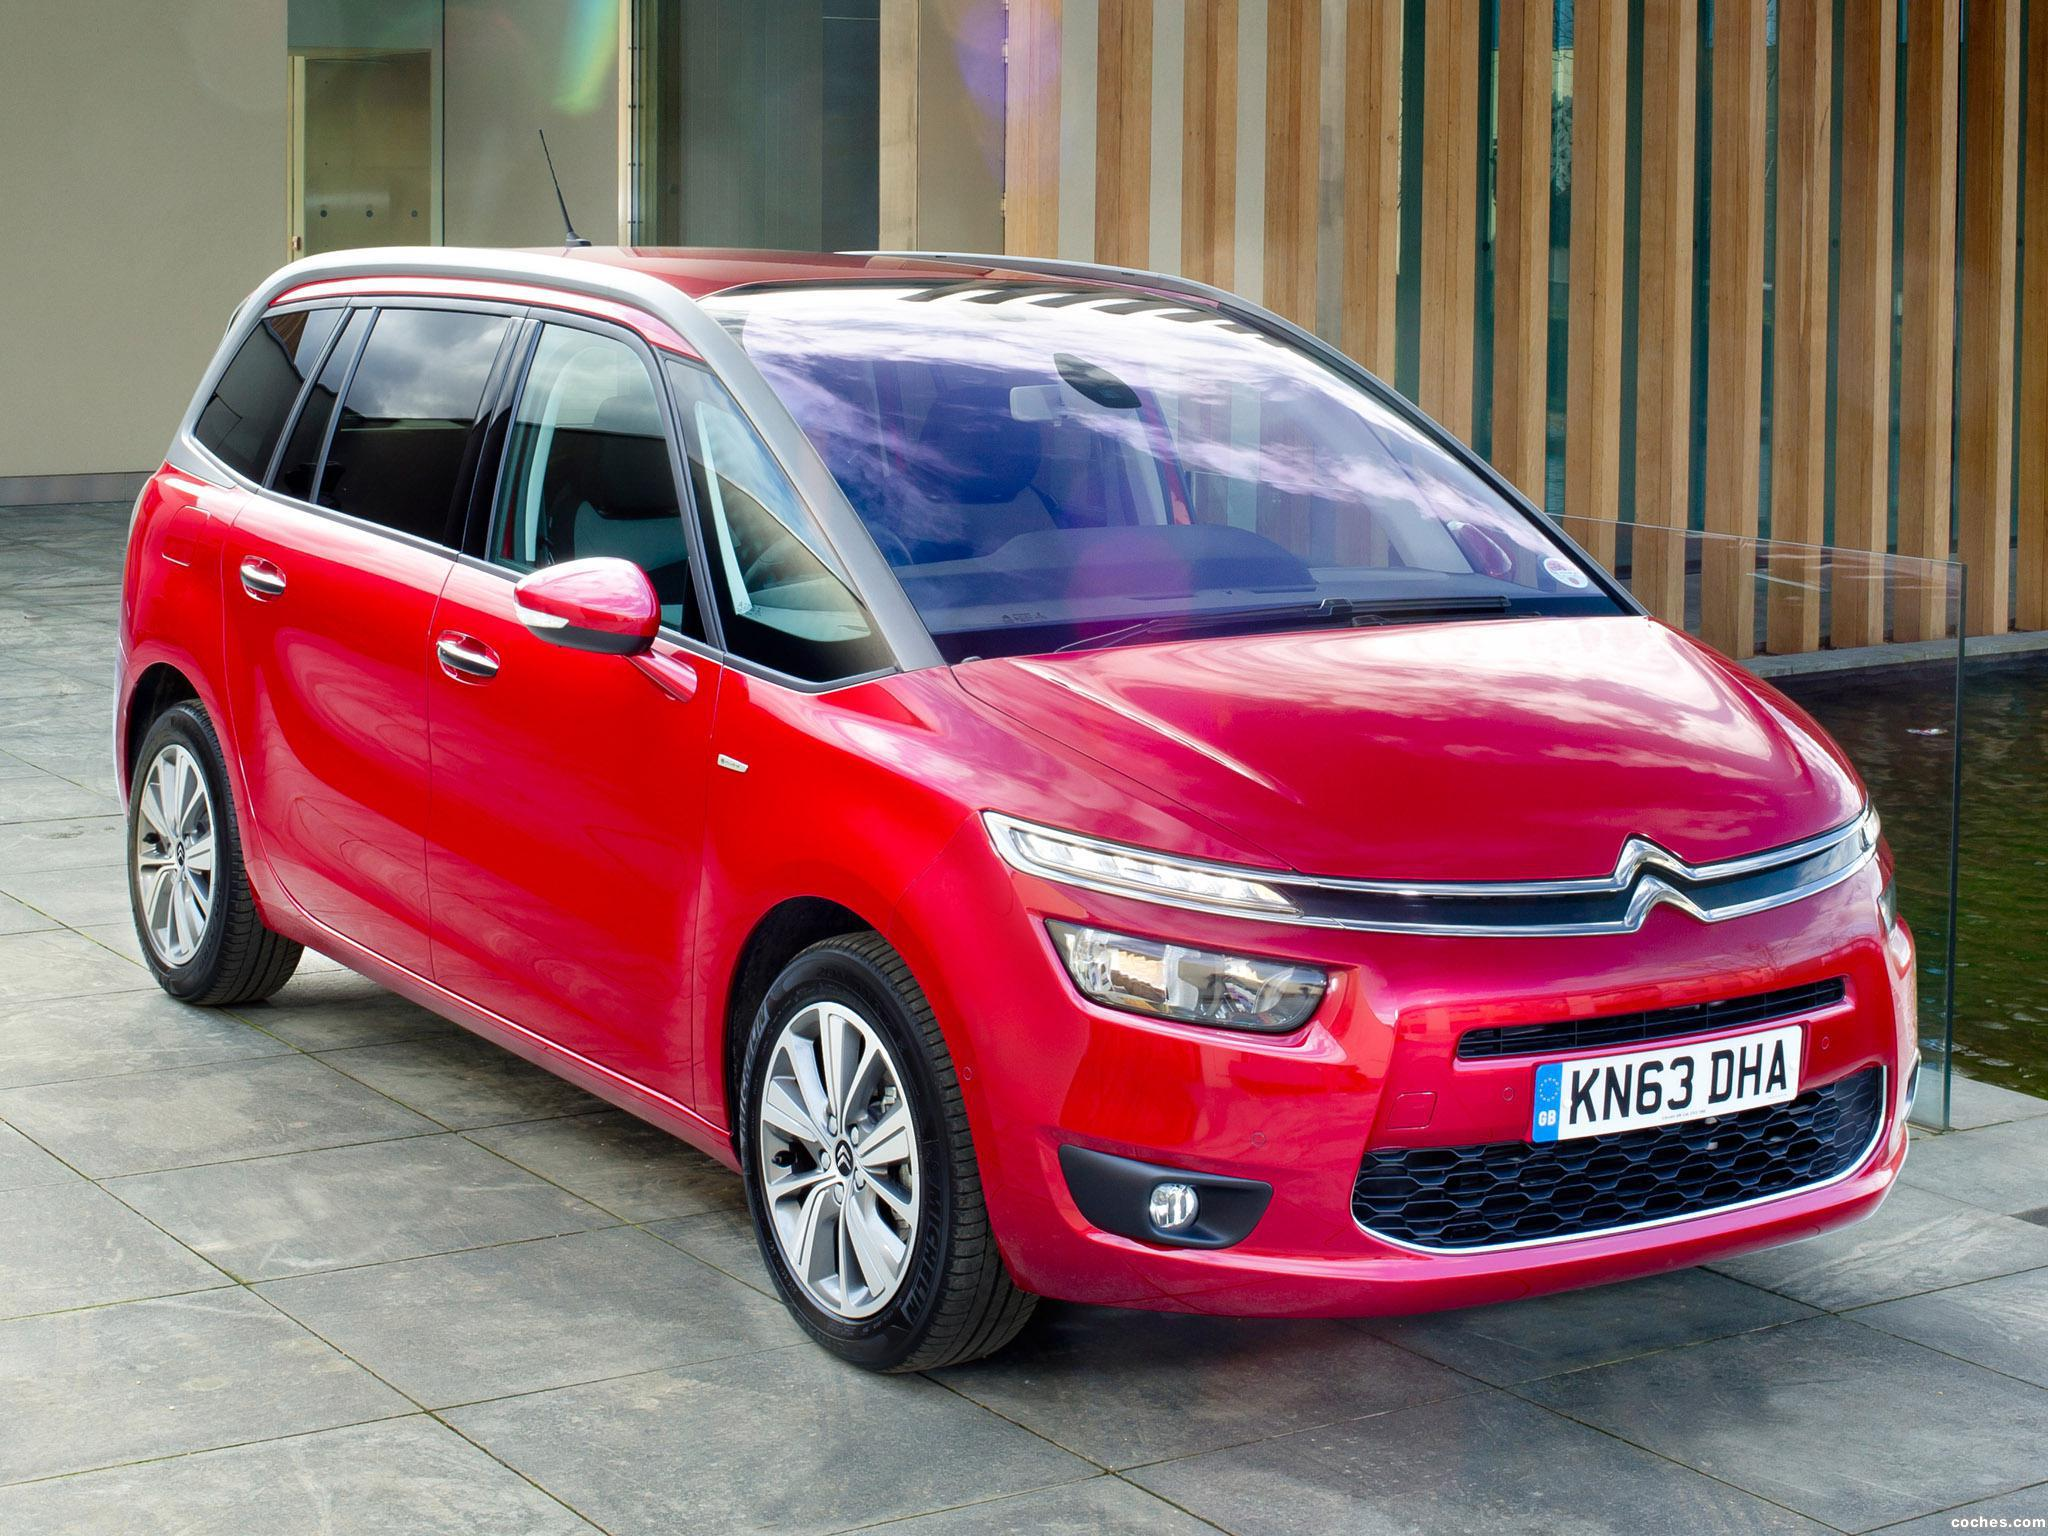 Foto 0 de Citroen C4 Grand Picasso UK 2014